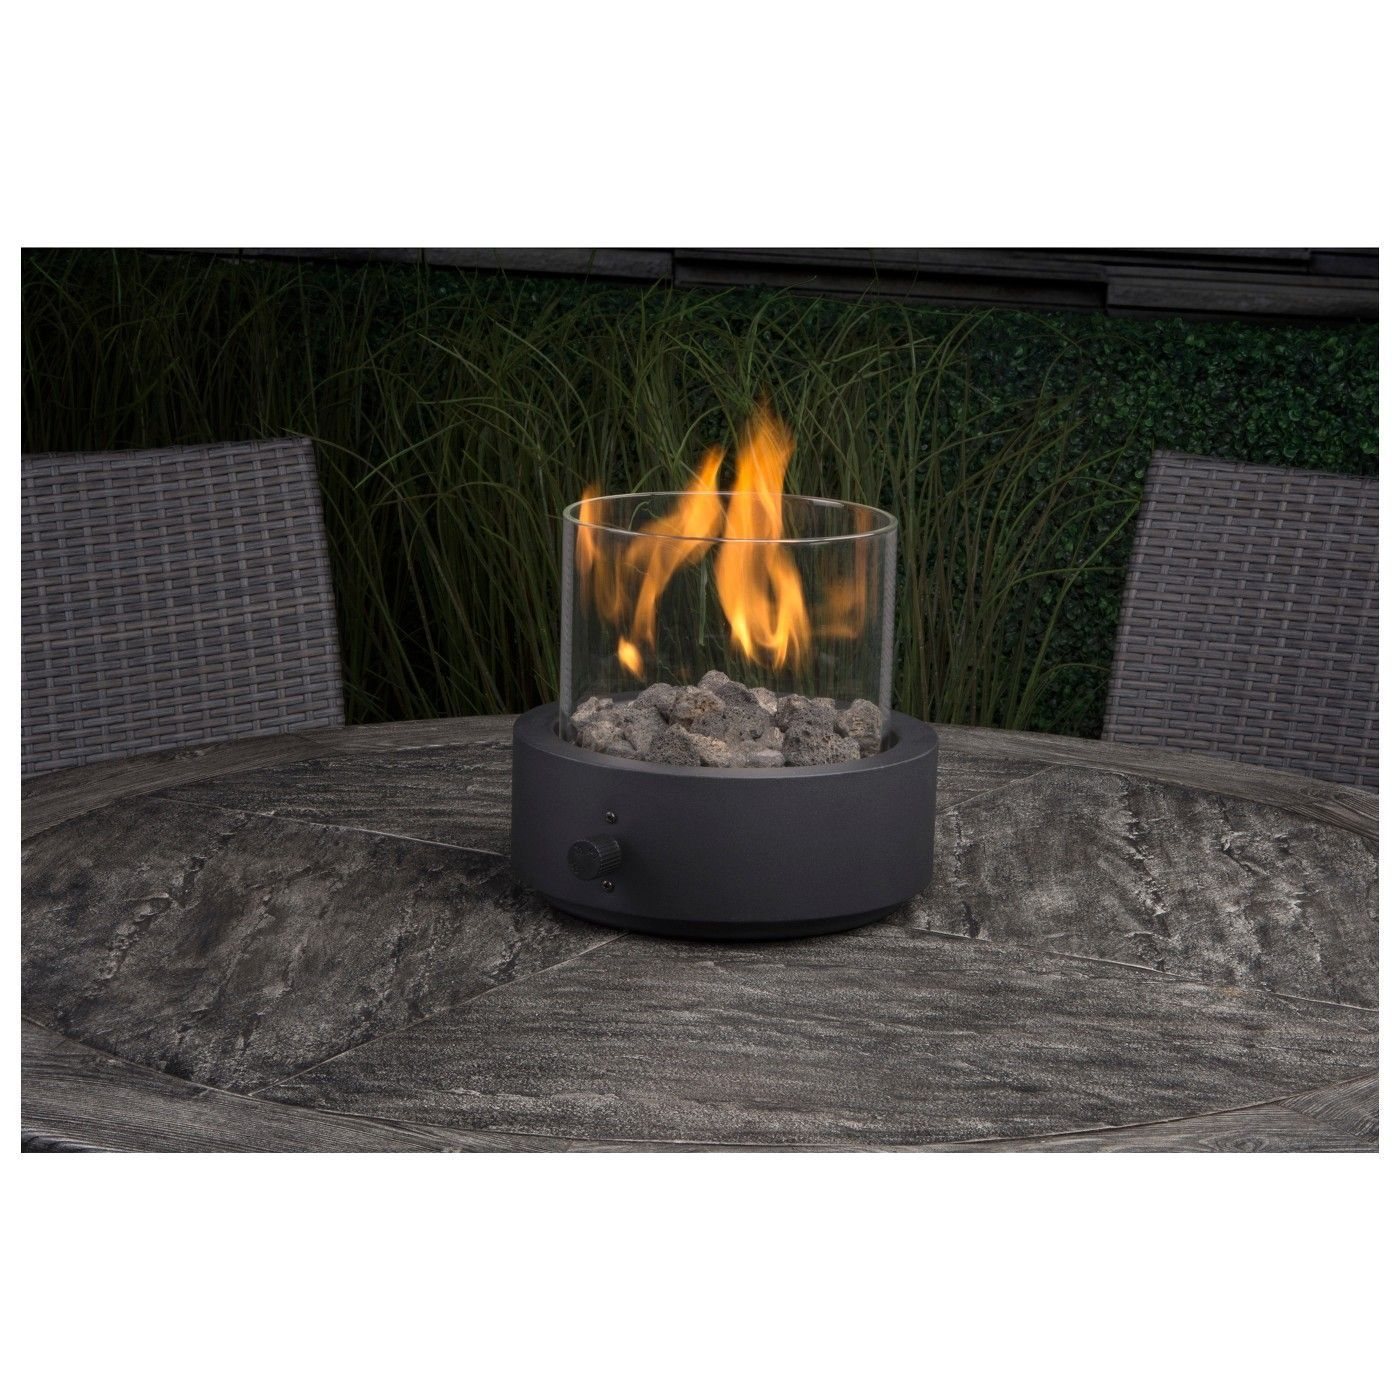 Two Harbors 10 Lp Tabletop Gas Fire Pit  Round